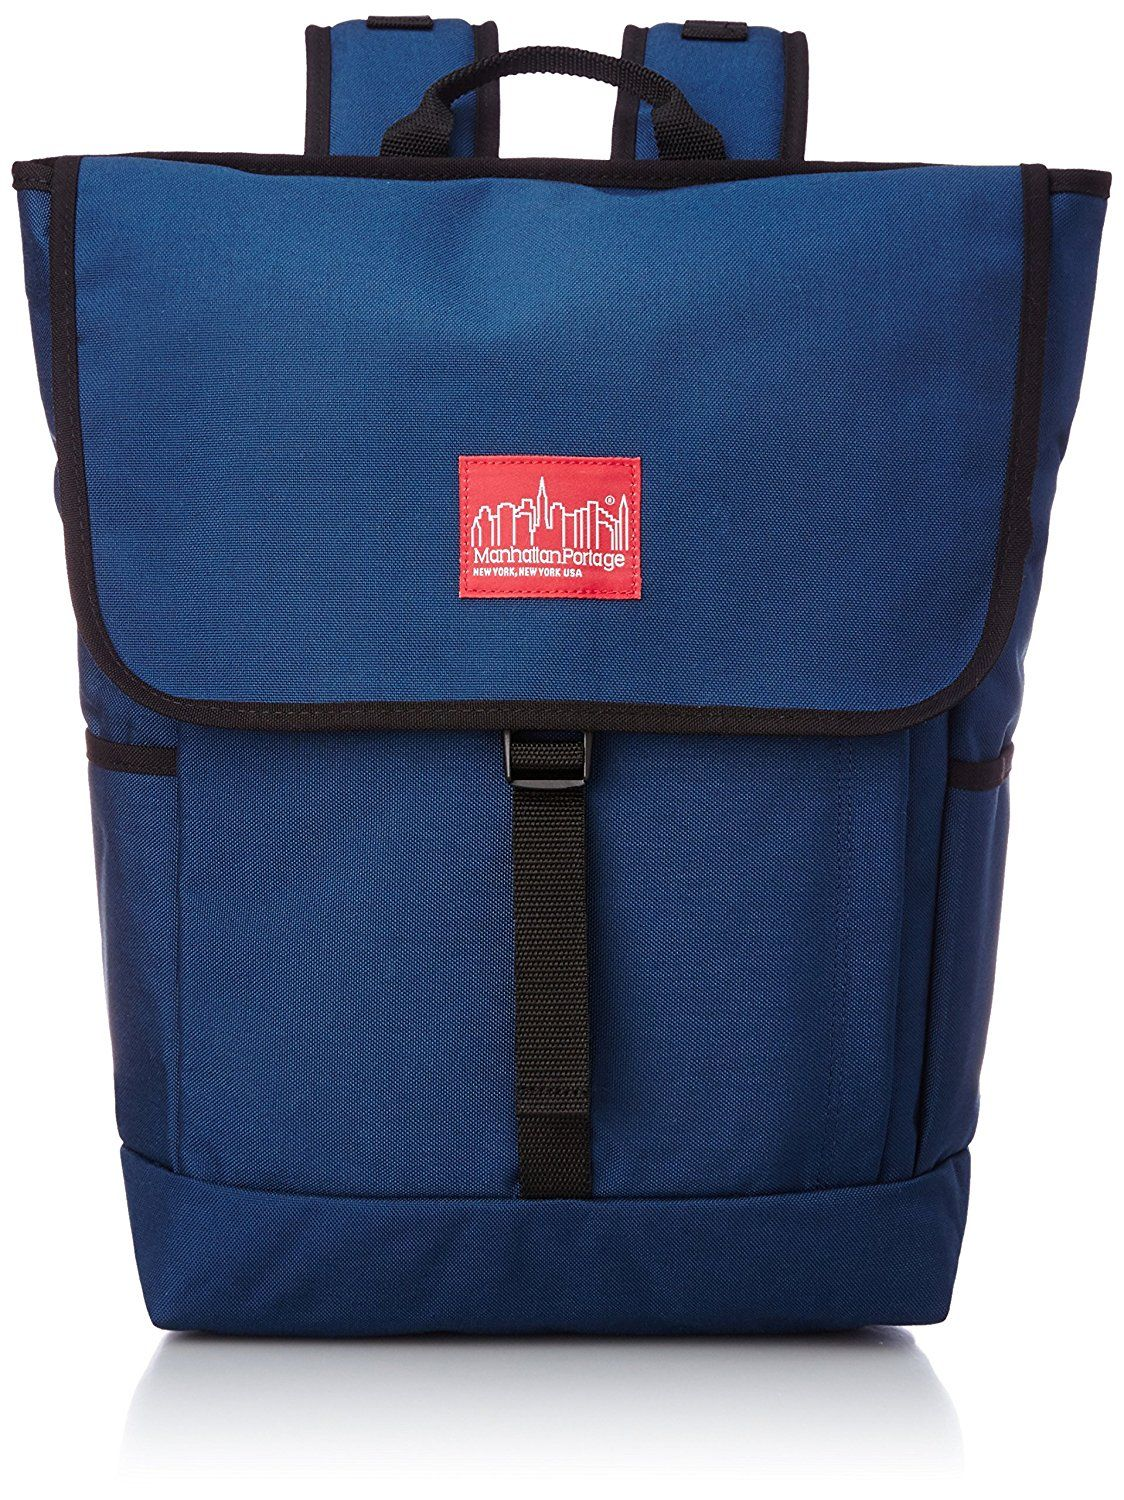 Manhattan Portage Washington Square Backpack   Unbelievable outdoor item  right here!   Backpacking backpack 036c82d879cec